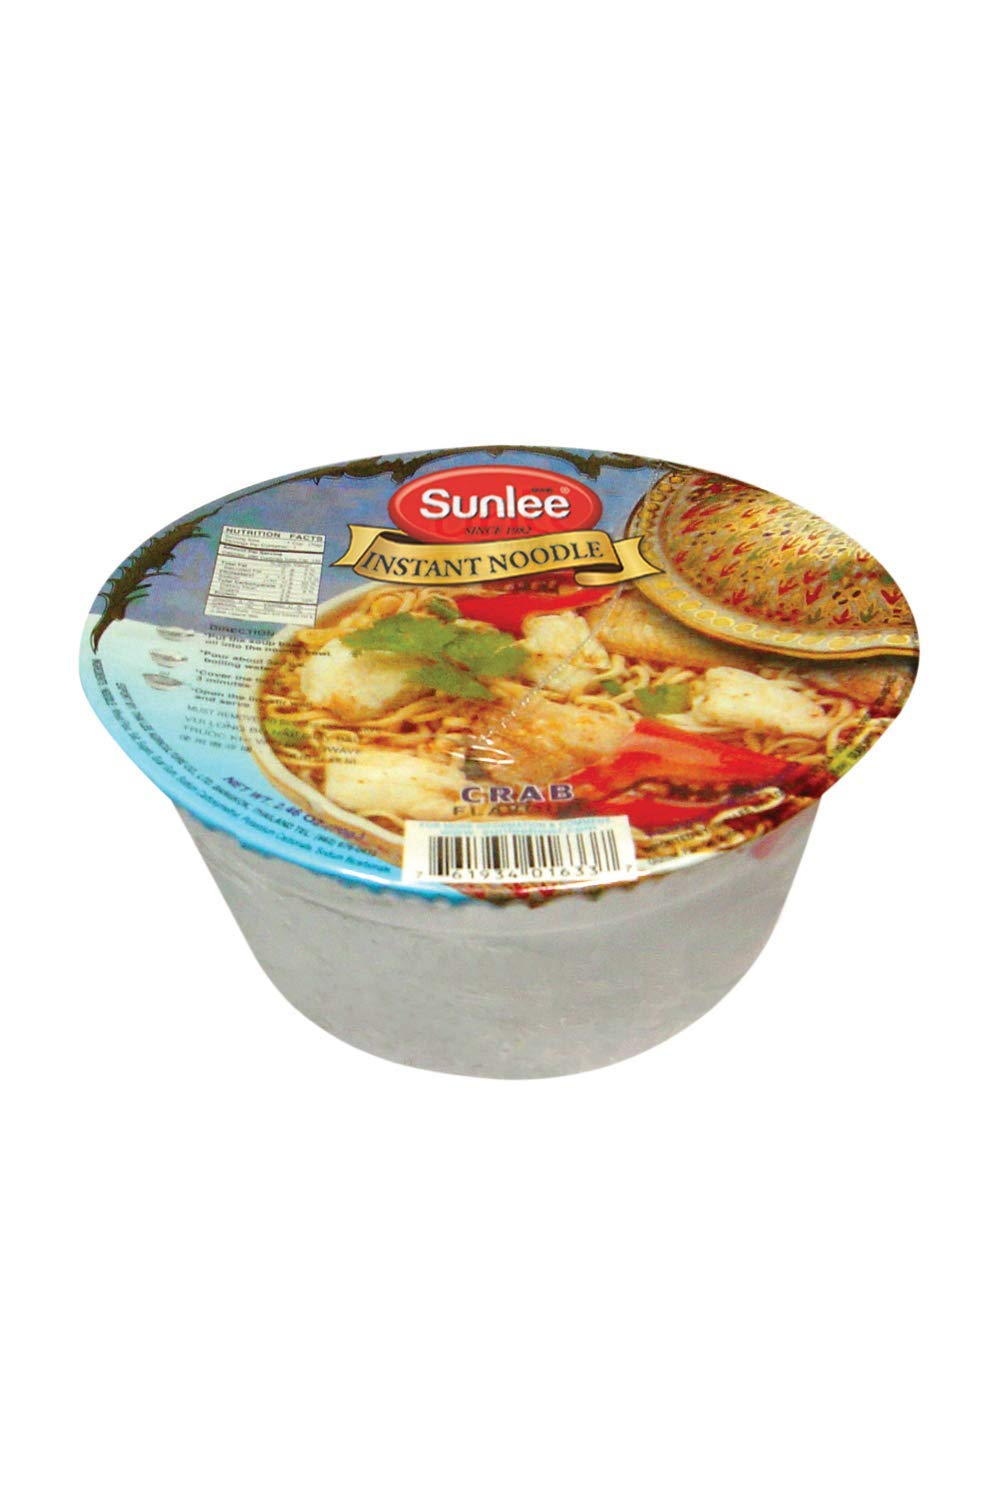 Sunlee Thai Instant Noodle - Crab Flavor, Easy to Prepare Food Great for Traveling, Backpacking, and Hiking (70 g)